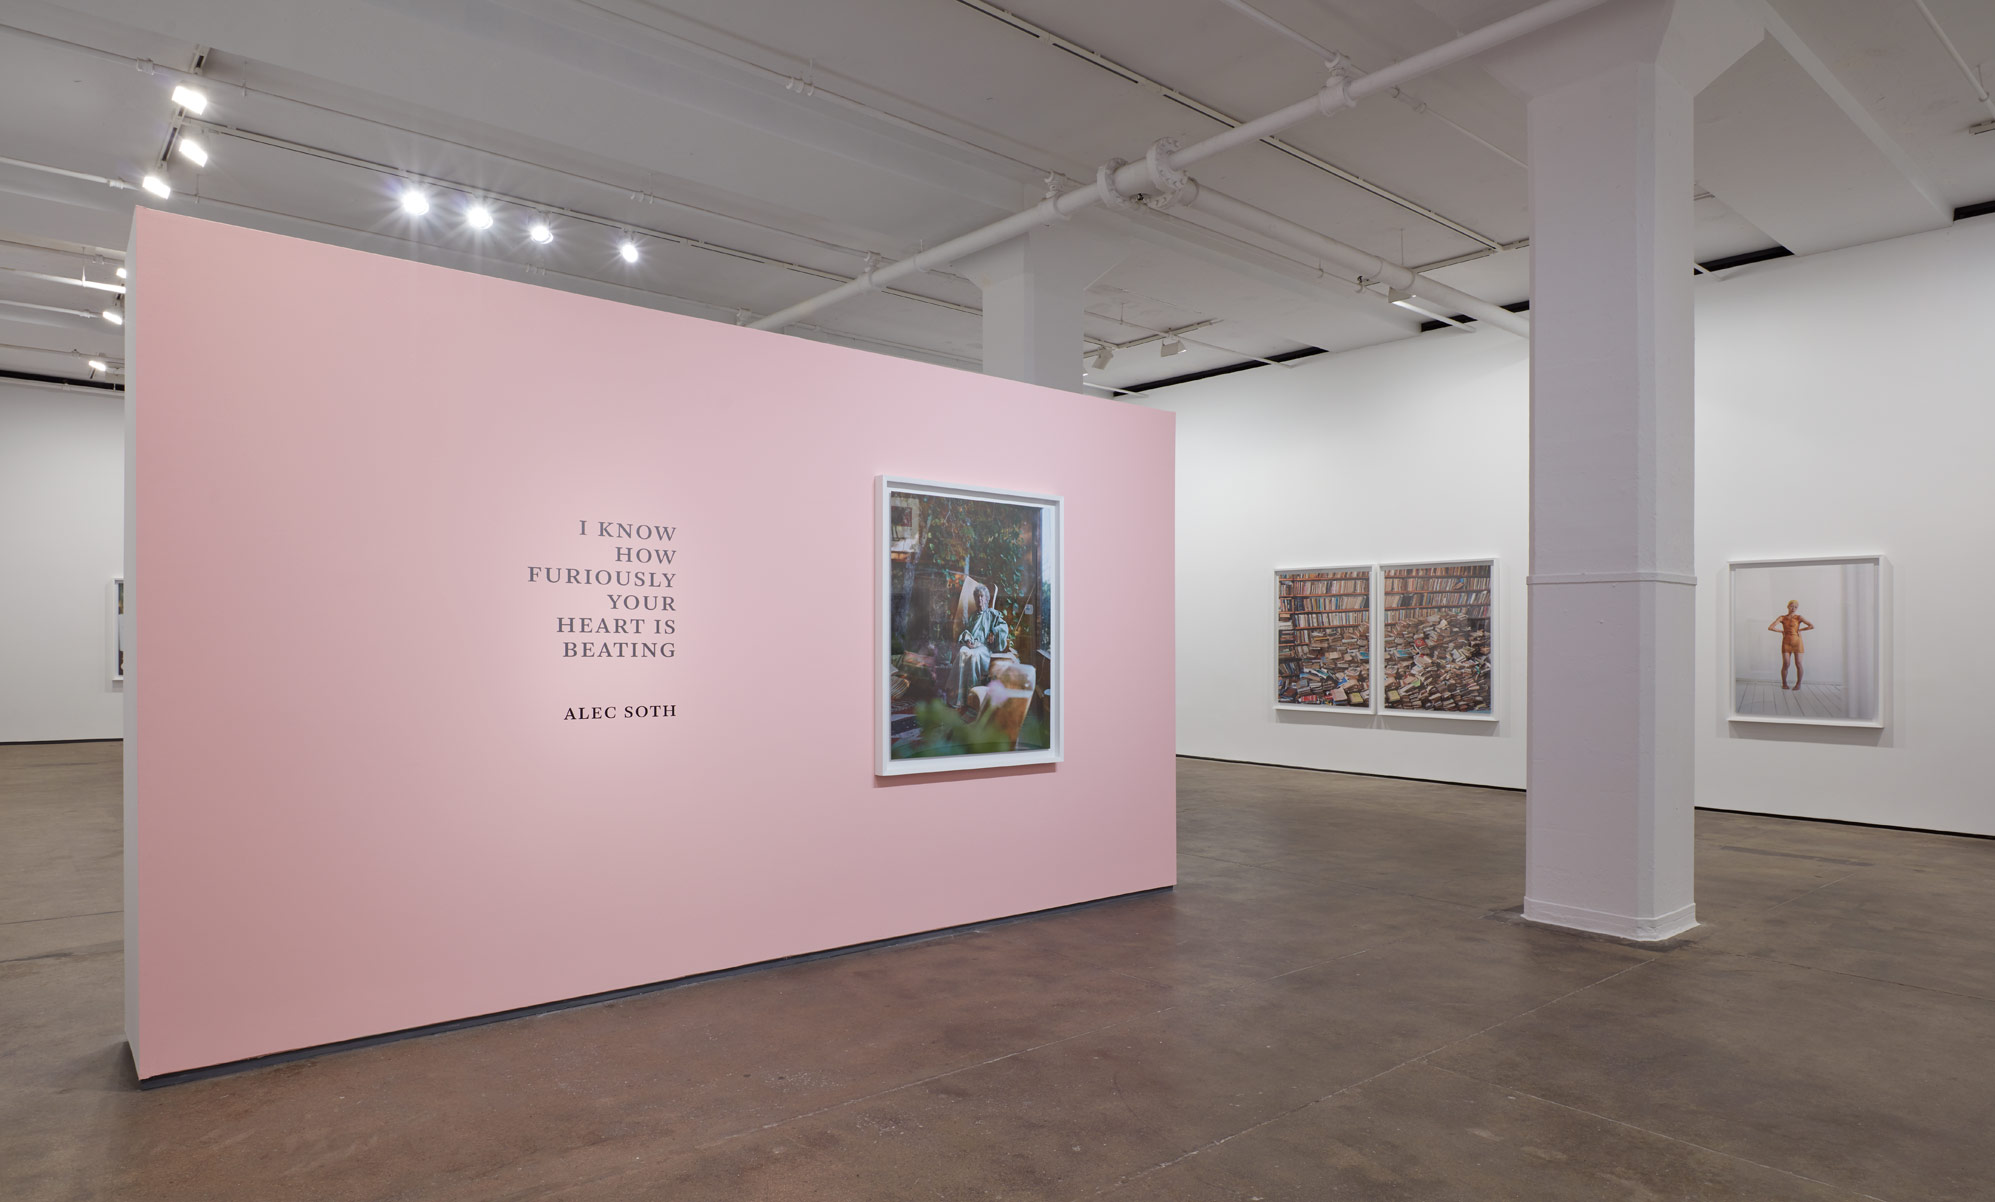 Installation view of Alec Soth: I Know How Furiously Your Heart Is Beating at Sean Kelly, New York March 21 - April 27, 2019 Photography: Jason Wyche, New York Courtesy: Sean Kelly, New York